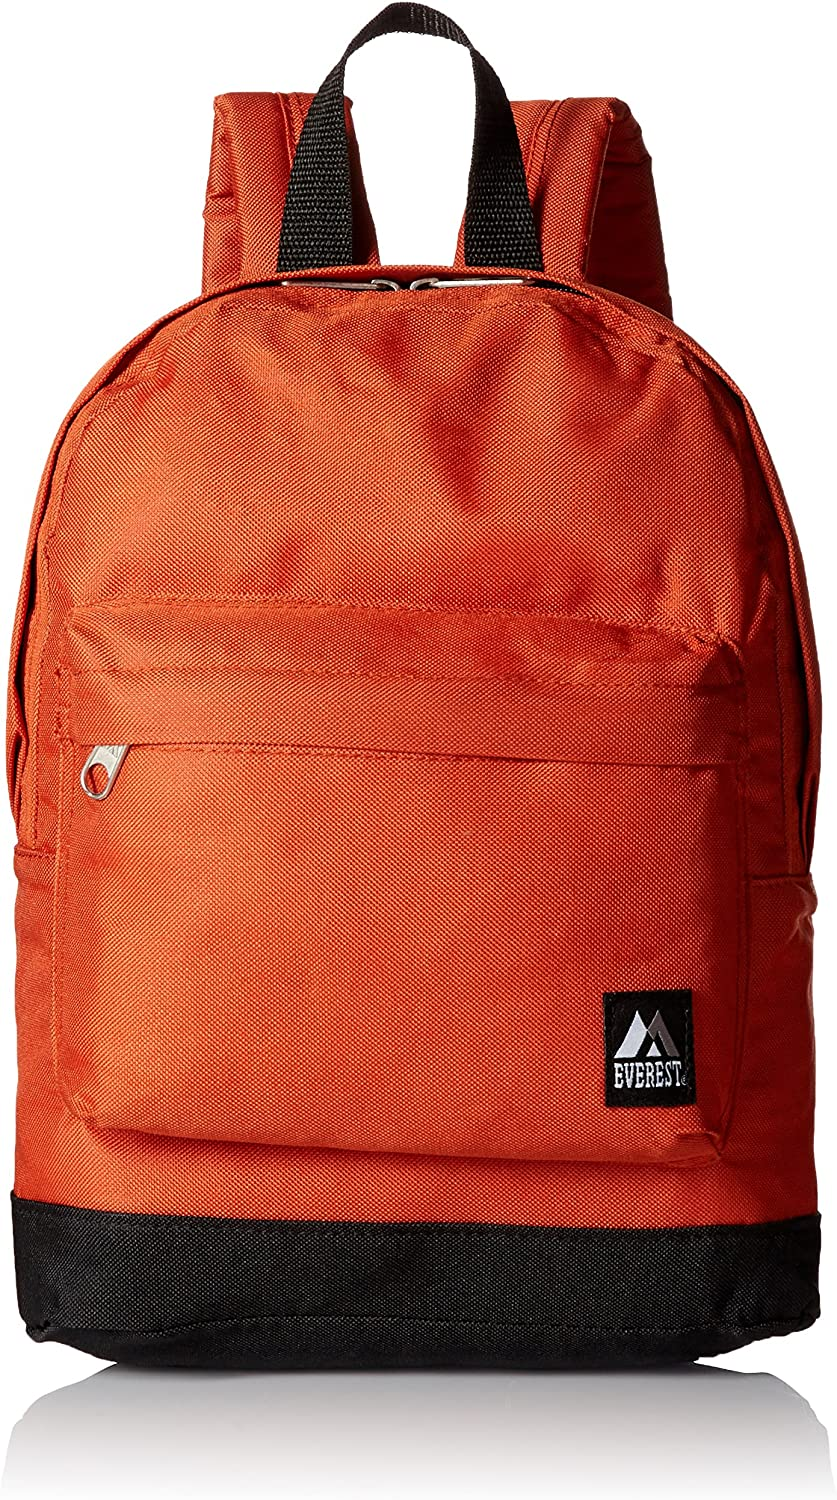 Everest Junior Backpack, Rustic Orange, One Size